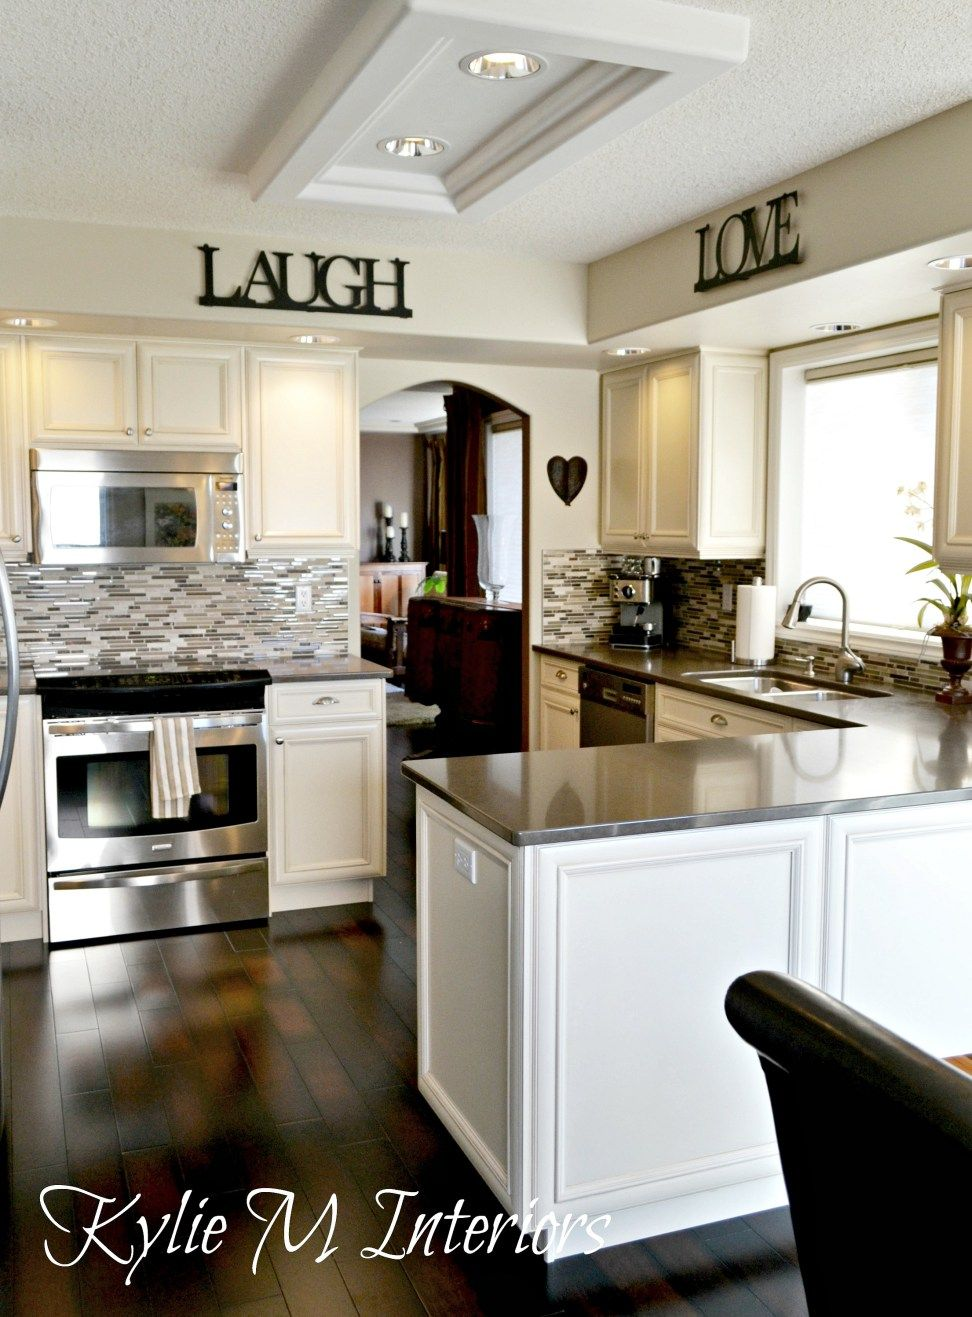 The 4 Best White Paint Colours for Cabinets: Benjamin ...